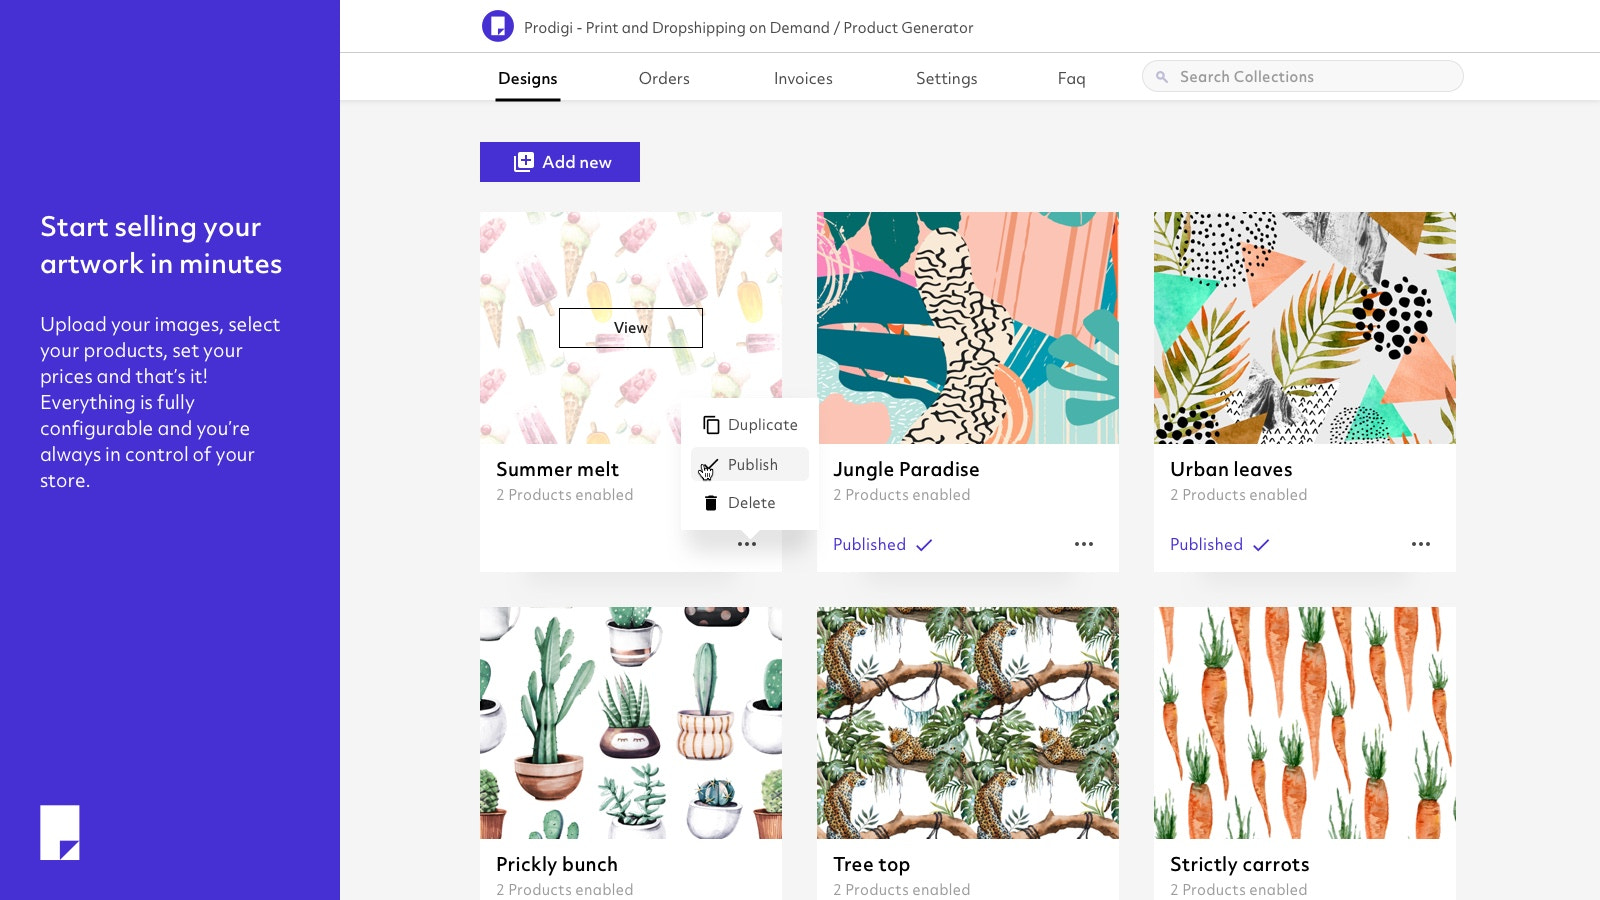 Start selling your artwork in minutes